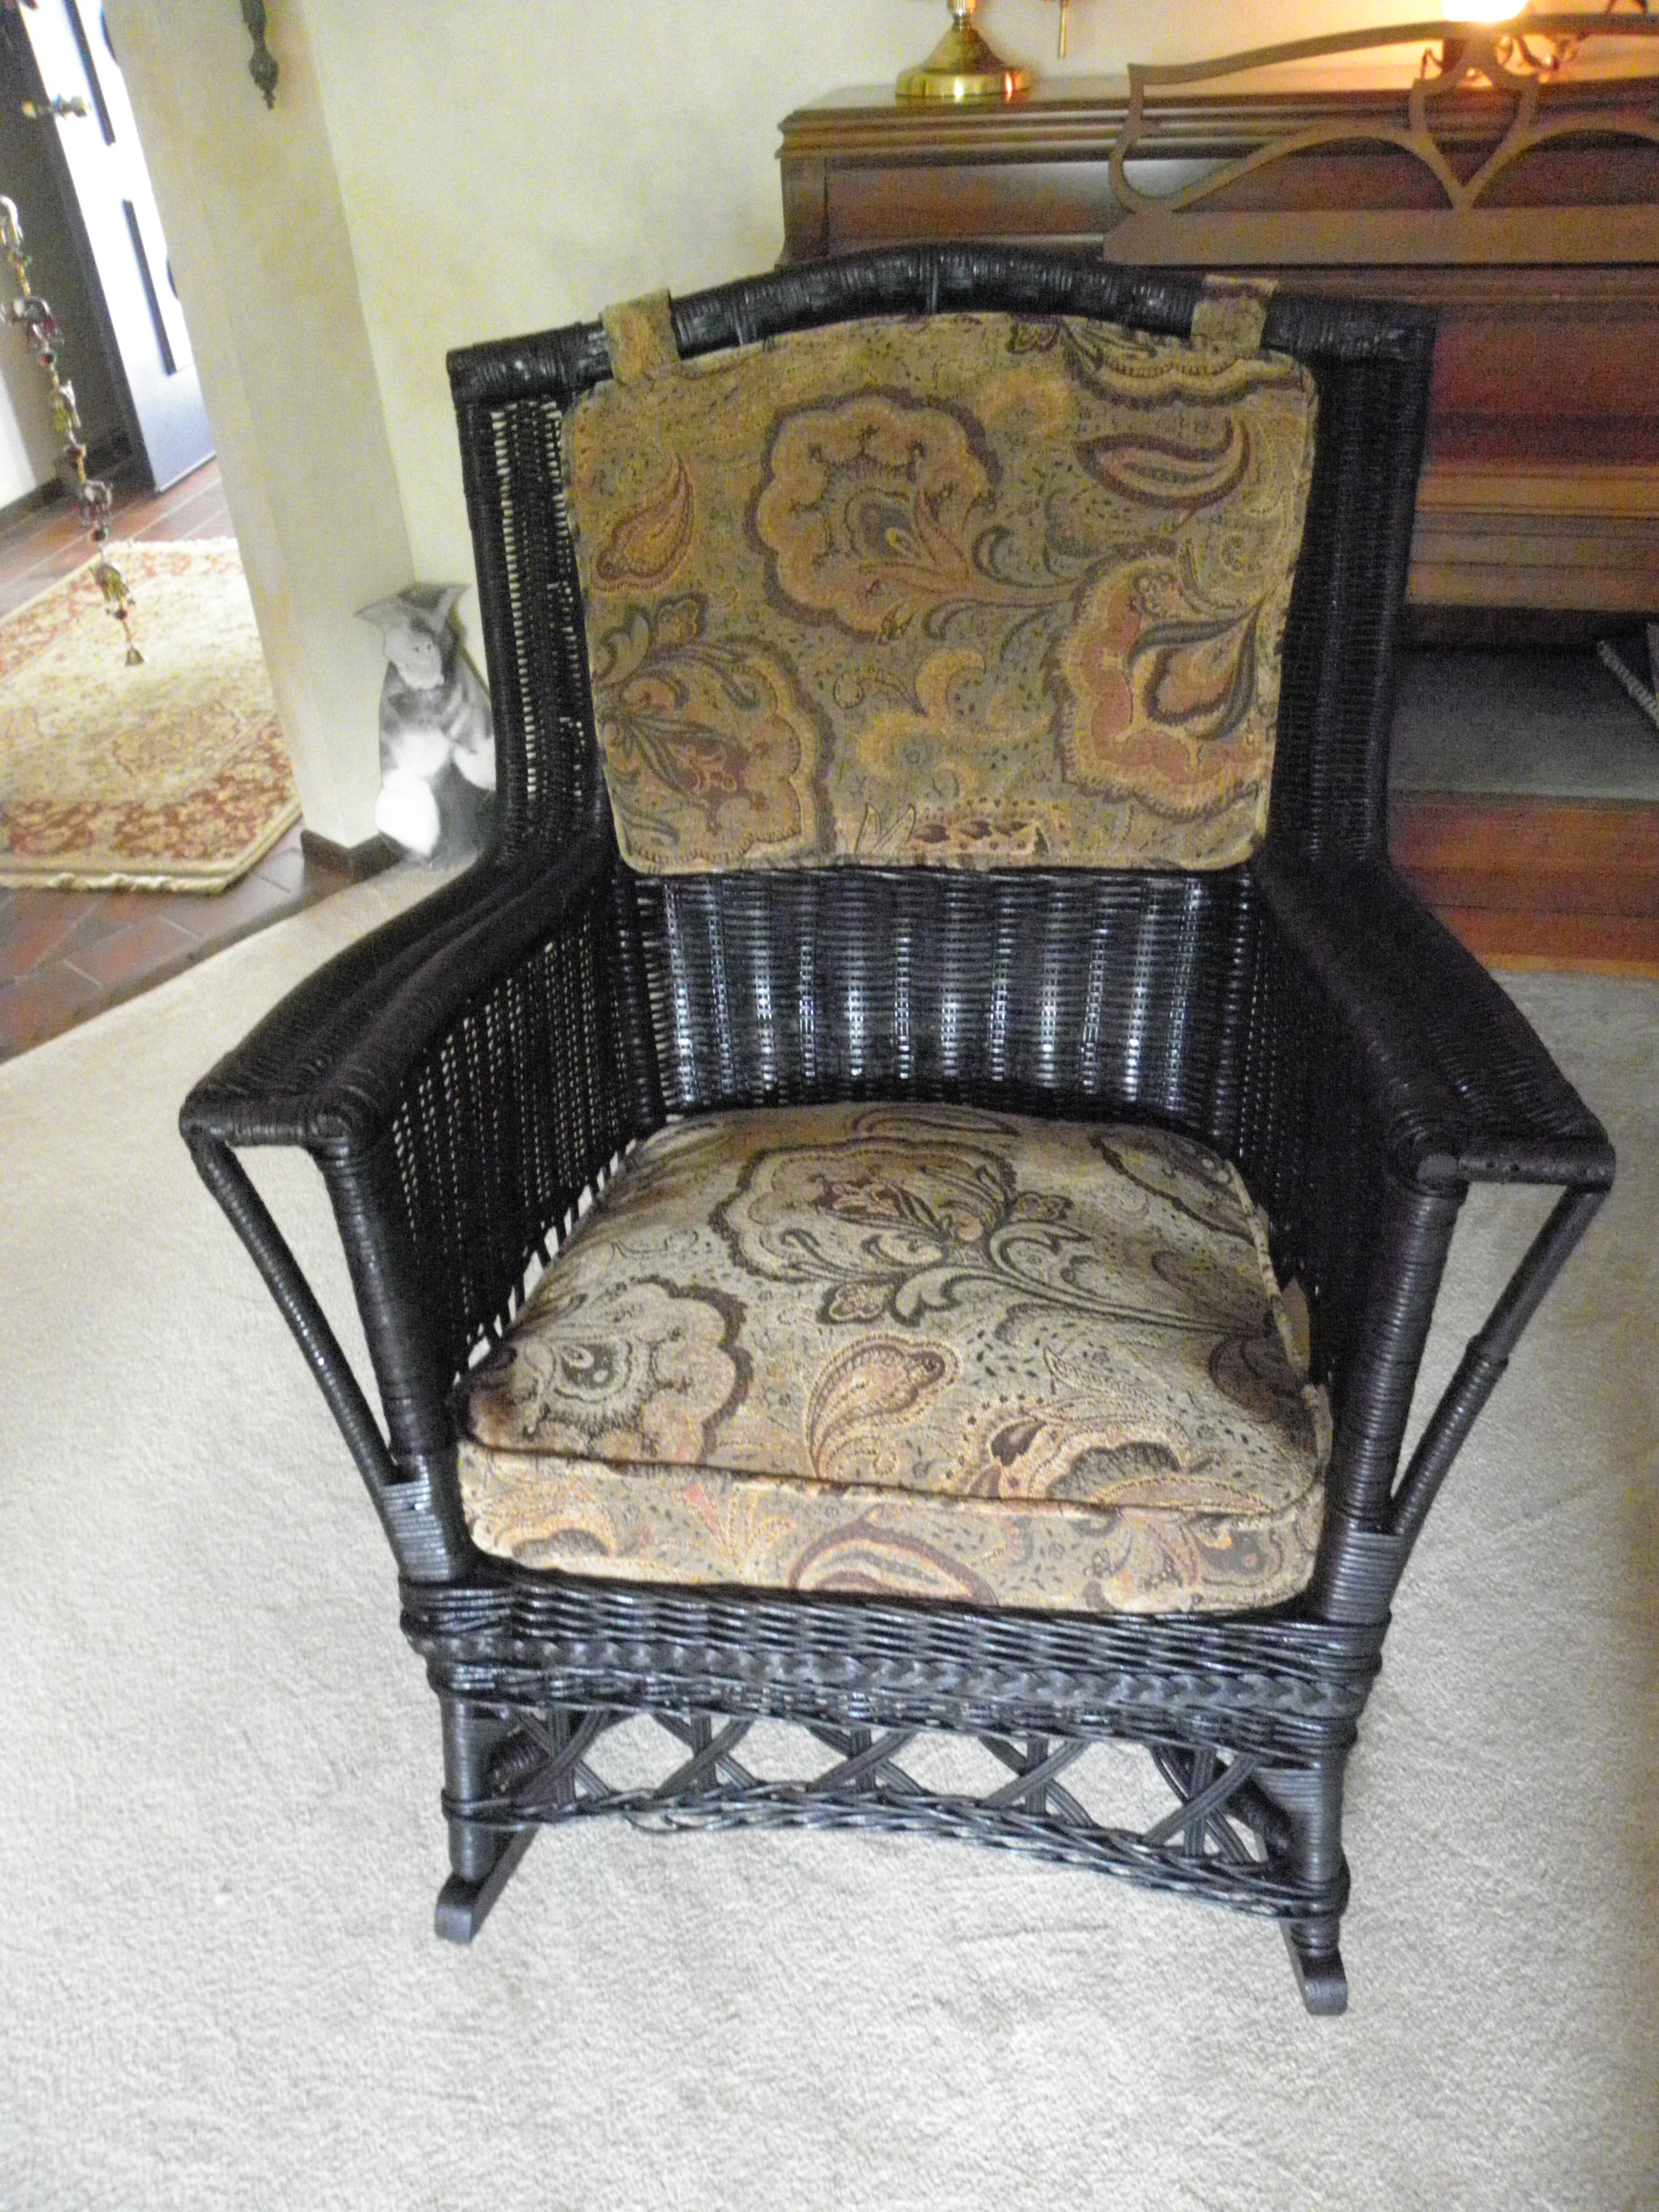 Vintage Wicker Rocking Chairs Intended For Famous Luxury Vintage Wicker Rocking Chair In Home Remodel Ideas With (Gallery 4 of 20)